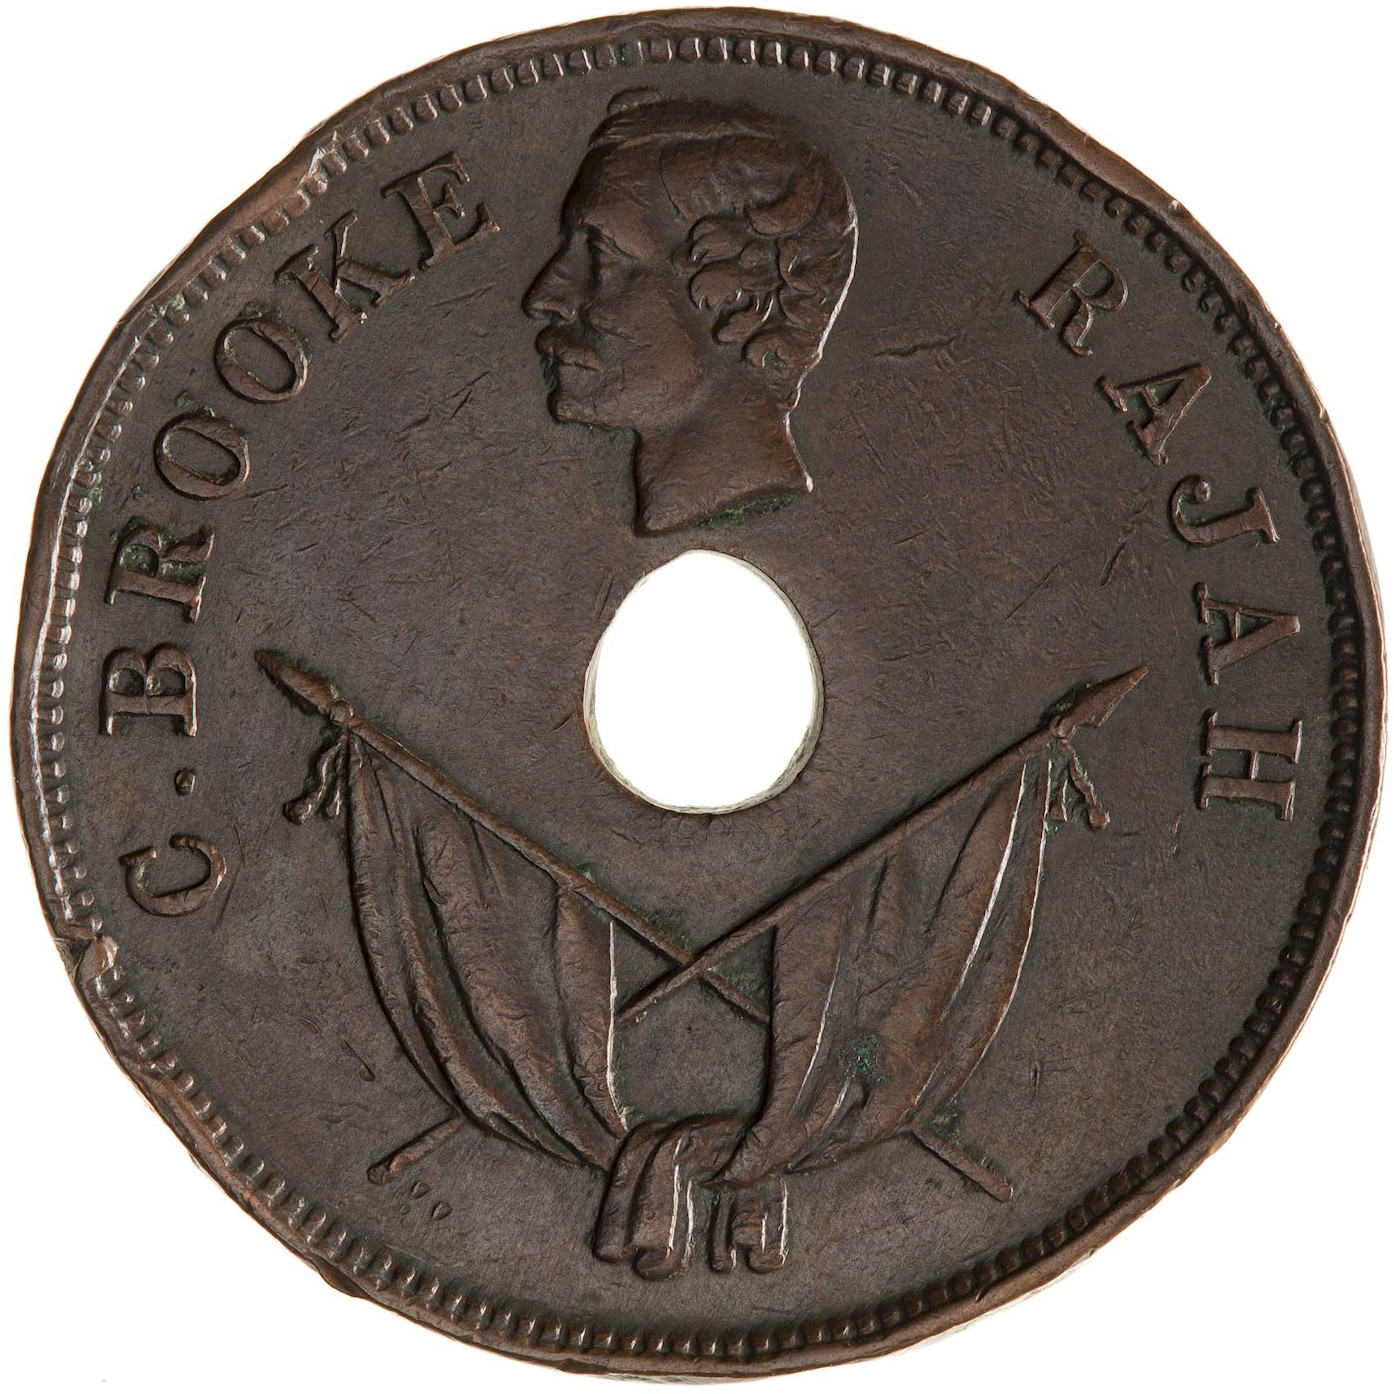 One Cent 1893: Photo Coin - 1 Cent, Sarawak, 1893